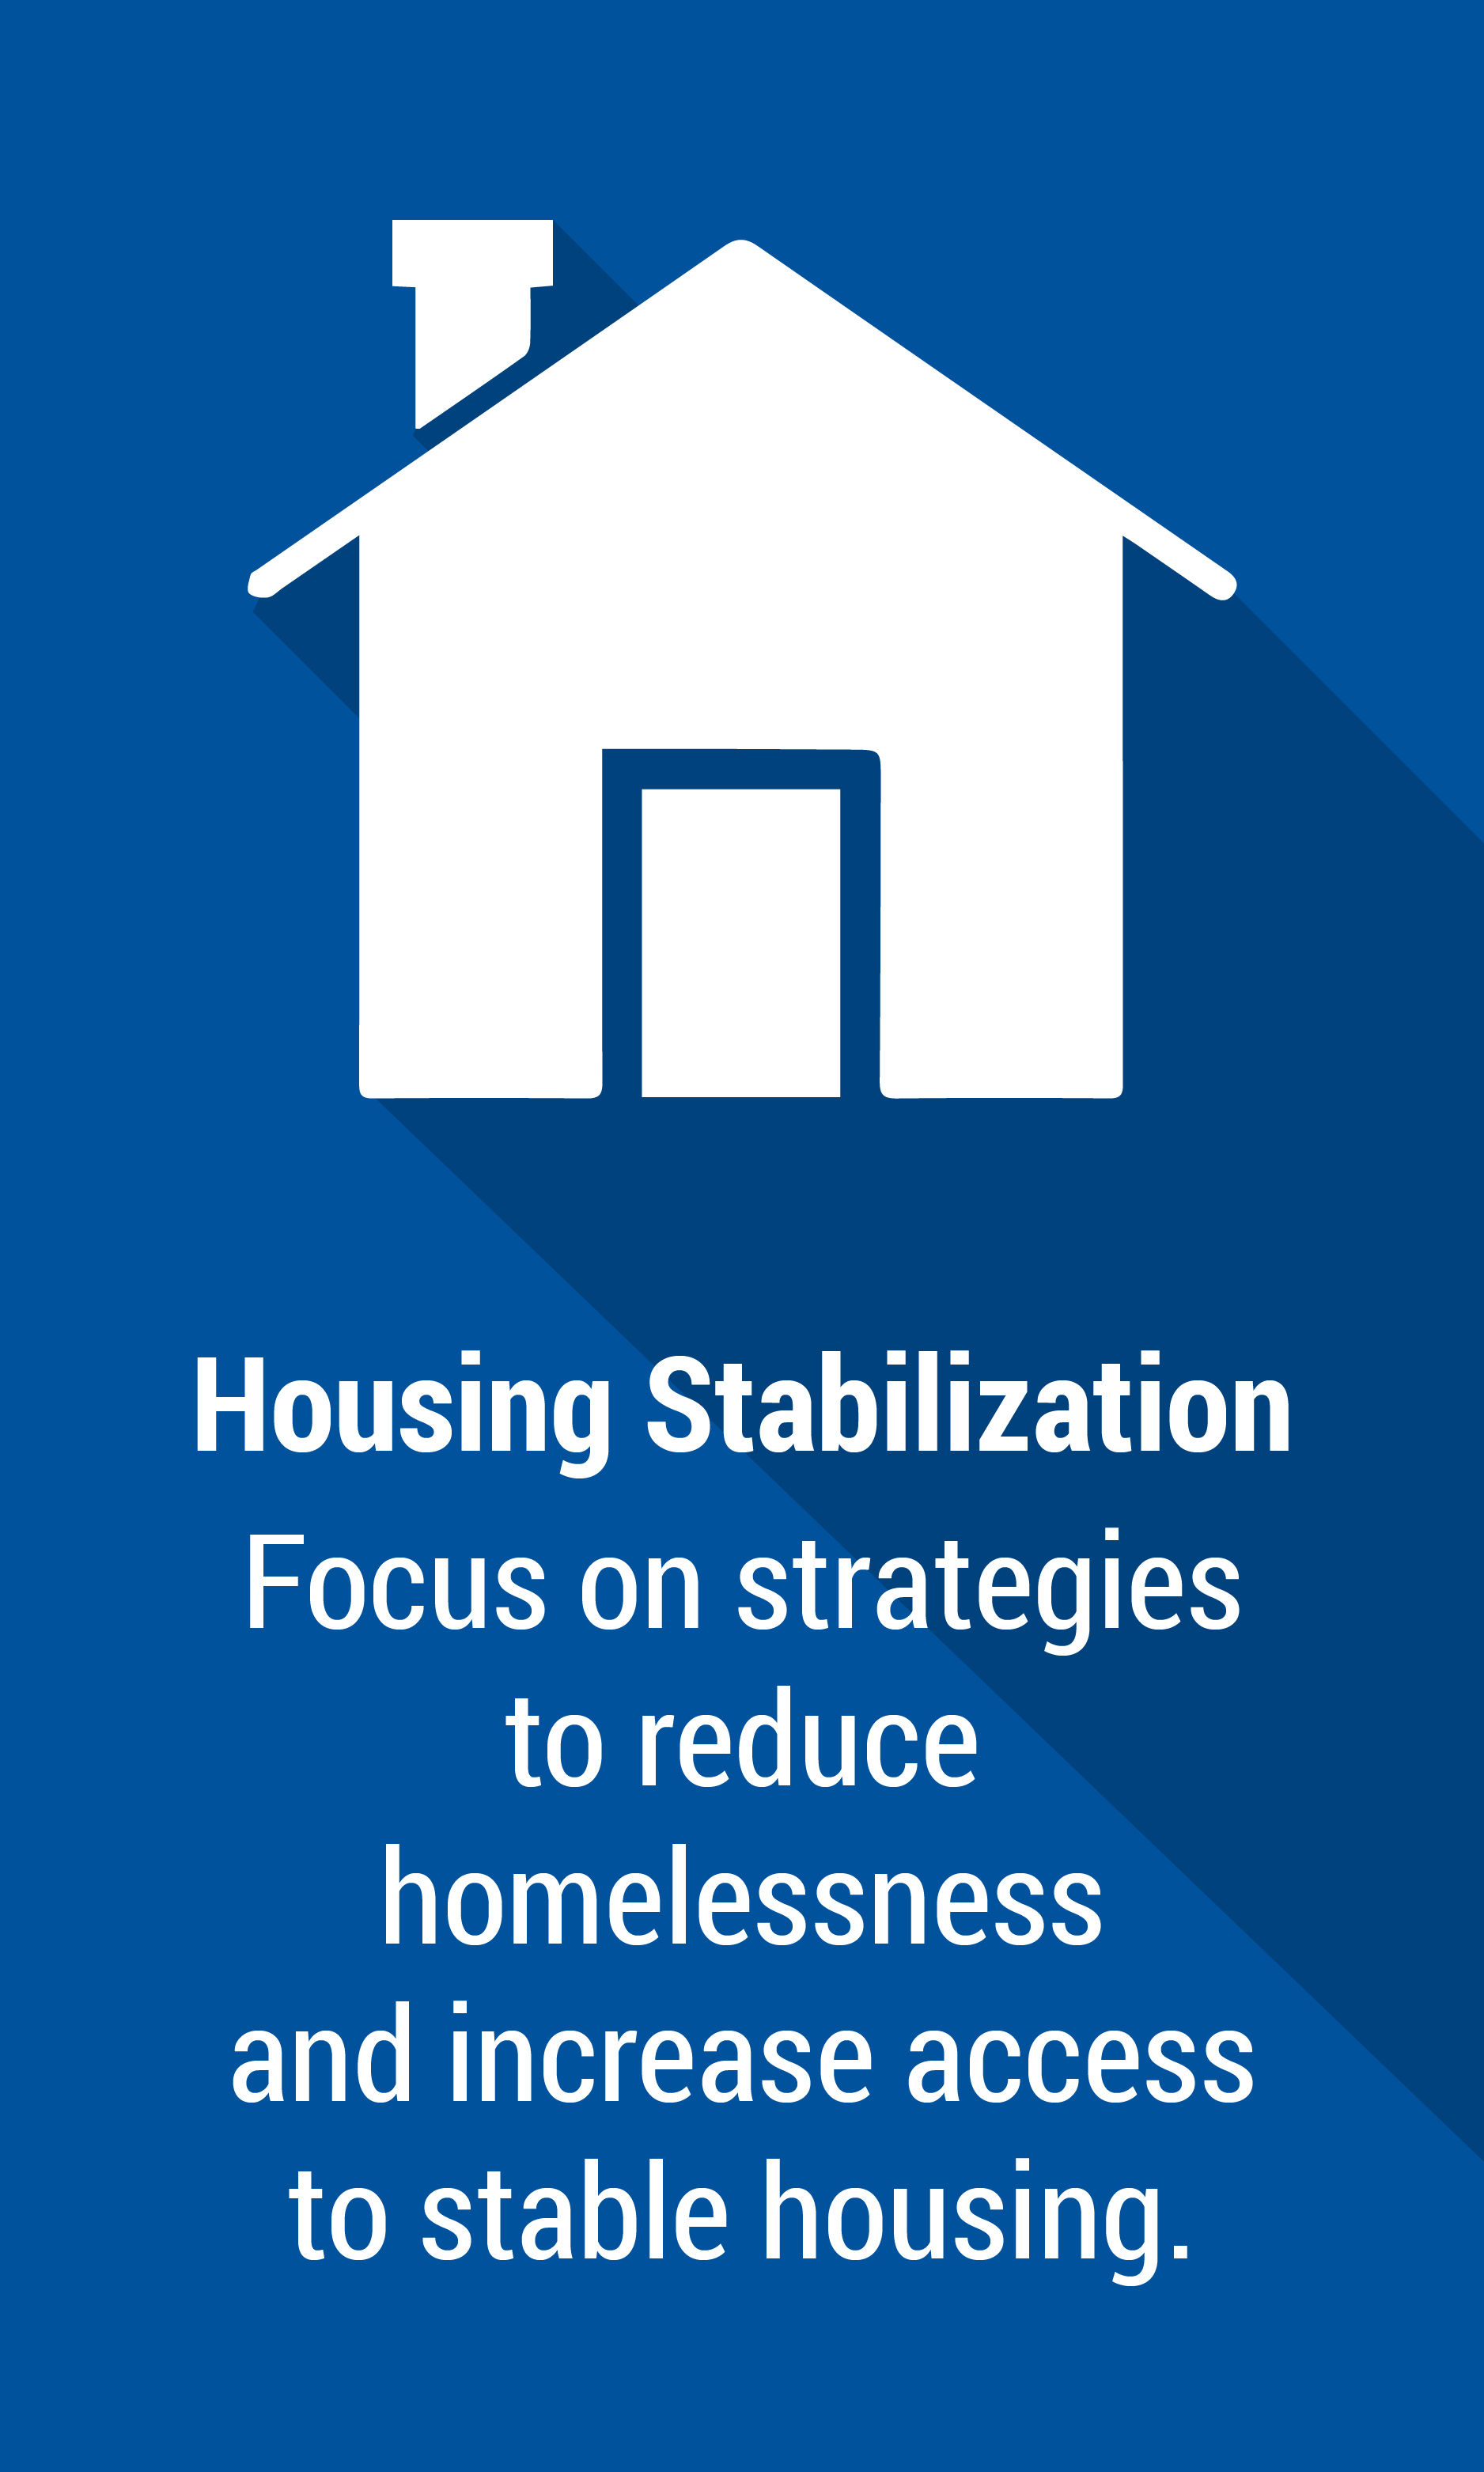 Housing Stabilization - Addressing Financial Stability Issues